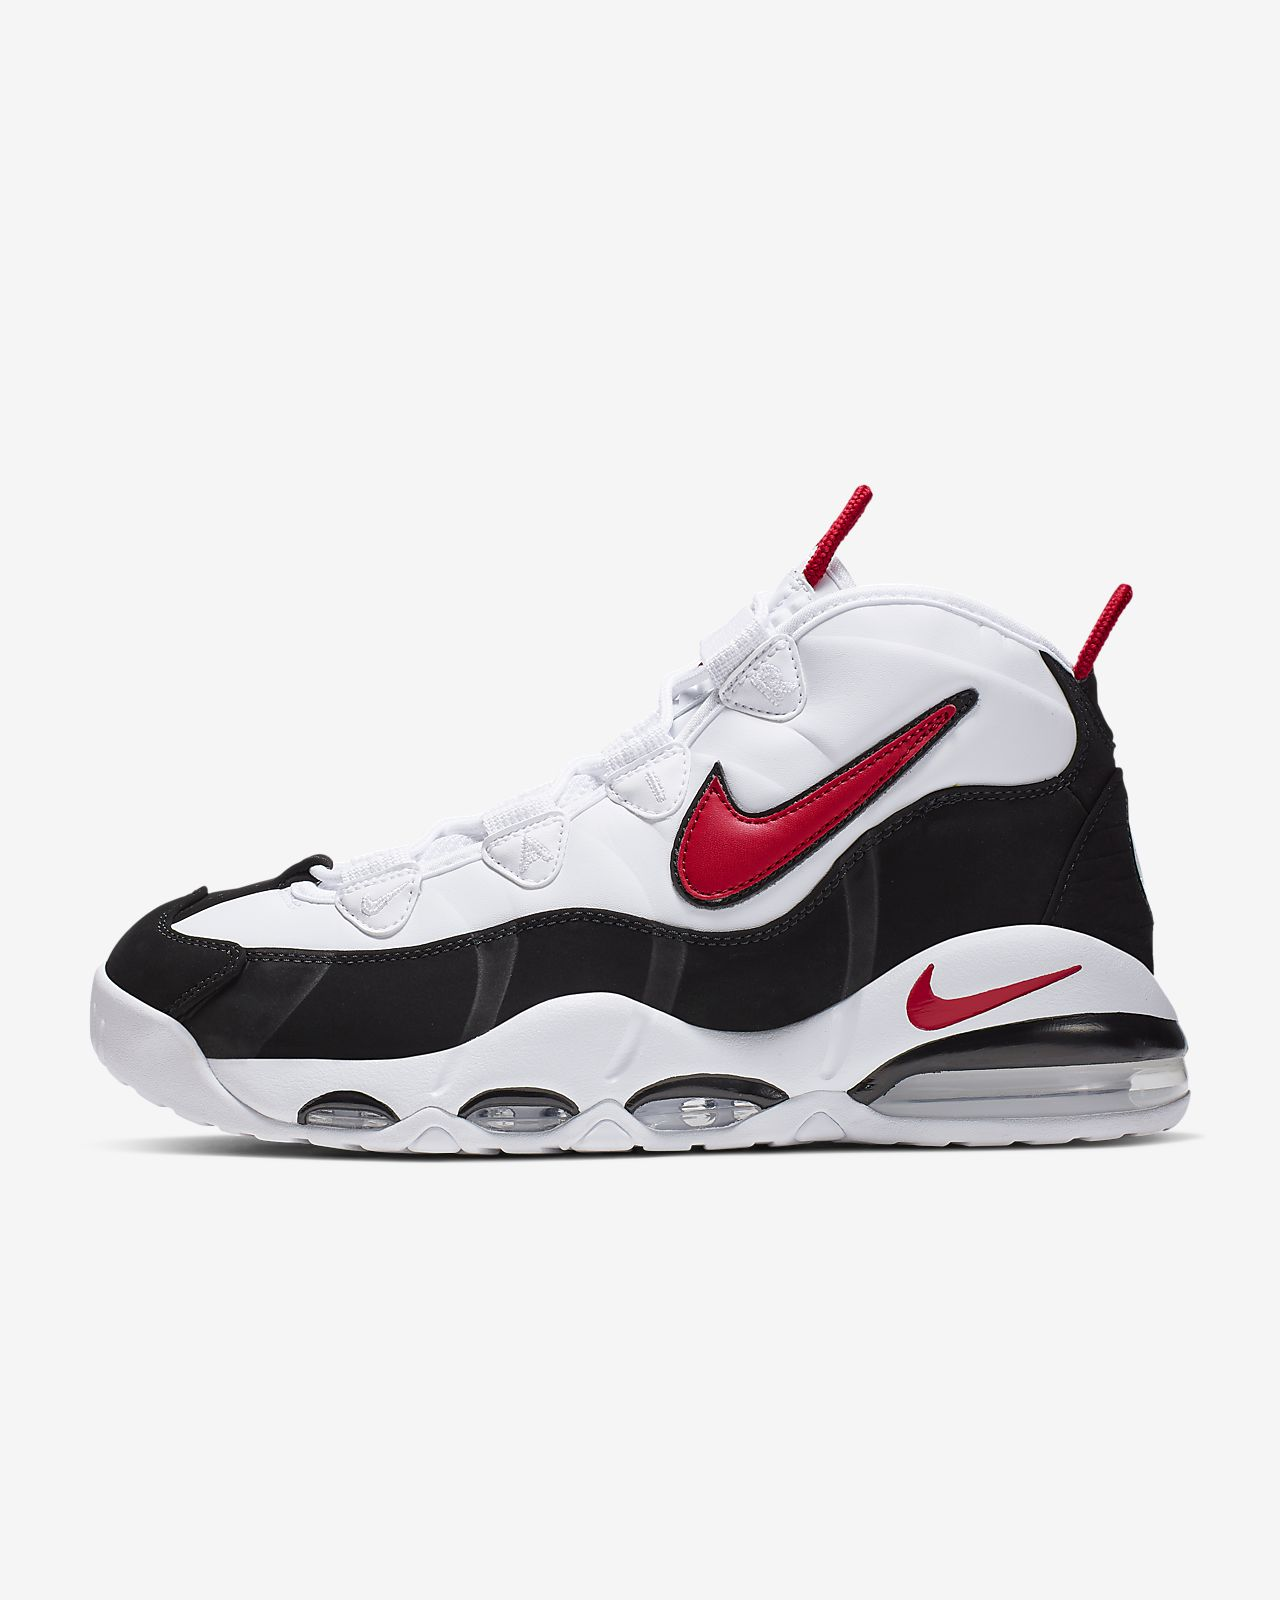 Chaussure Nike Air Max Uptempo '95 pour Homme